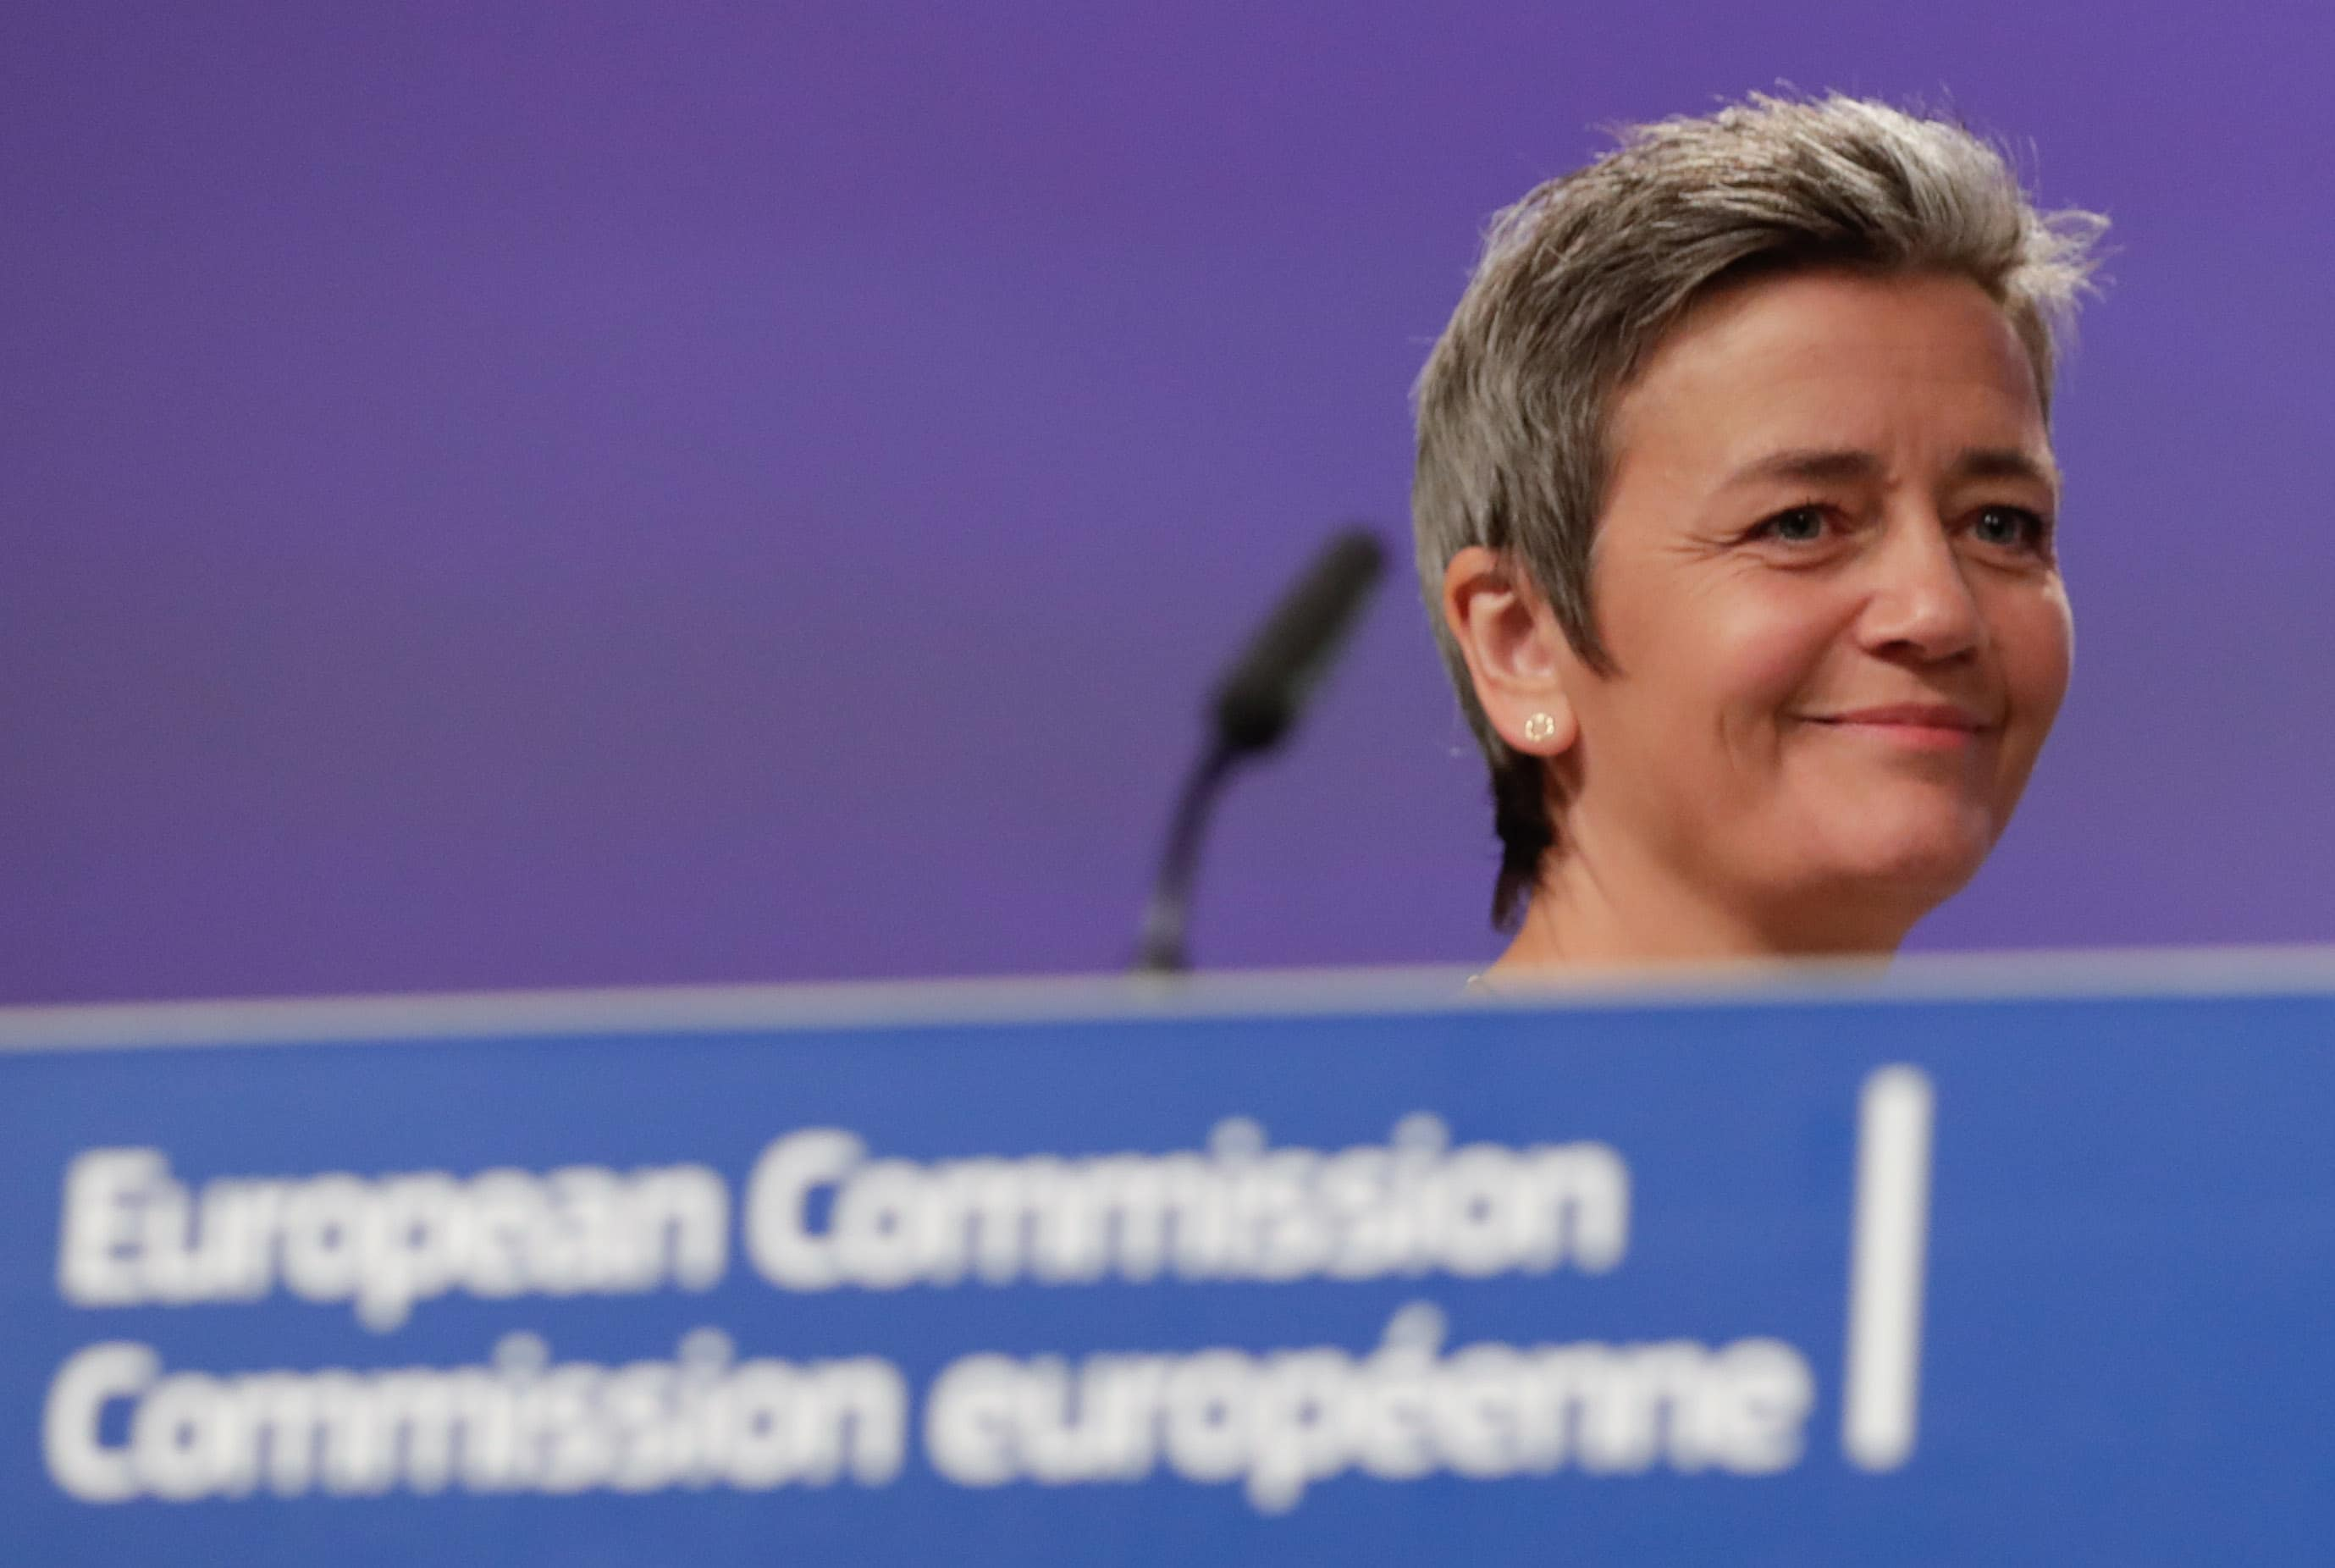 'I am still a candidate' for EU top job, says Vestager